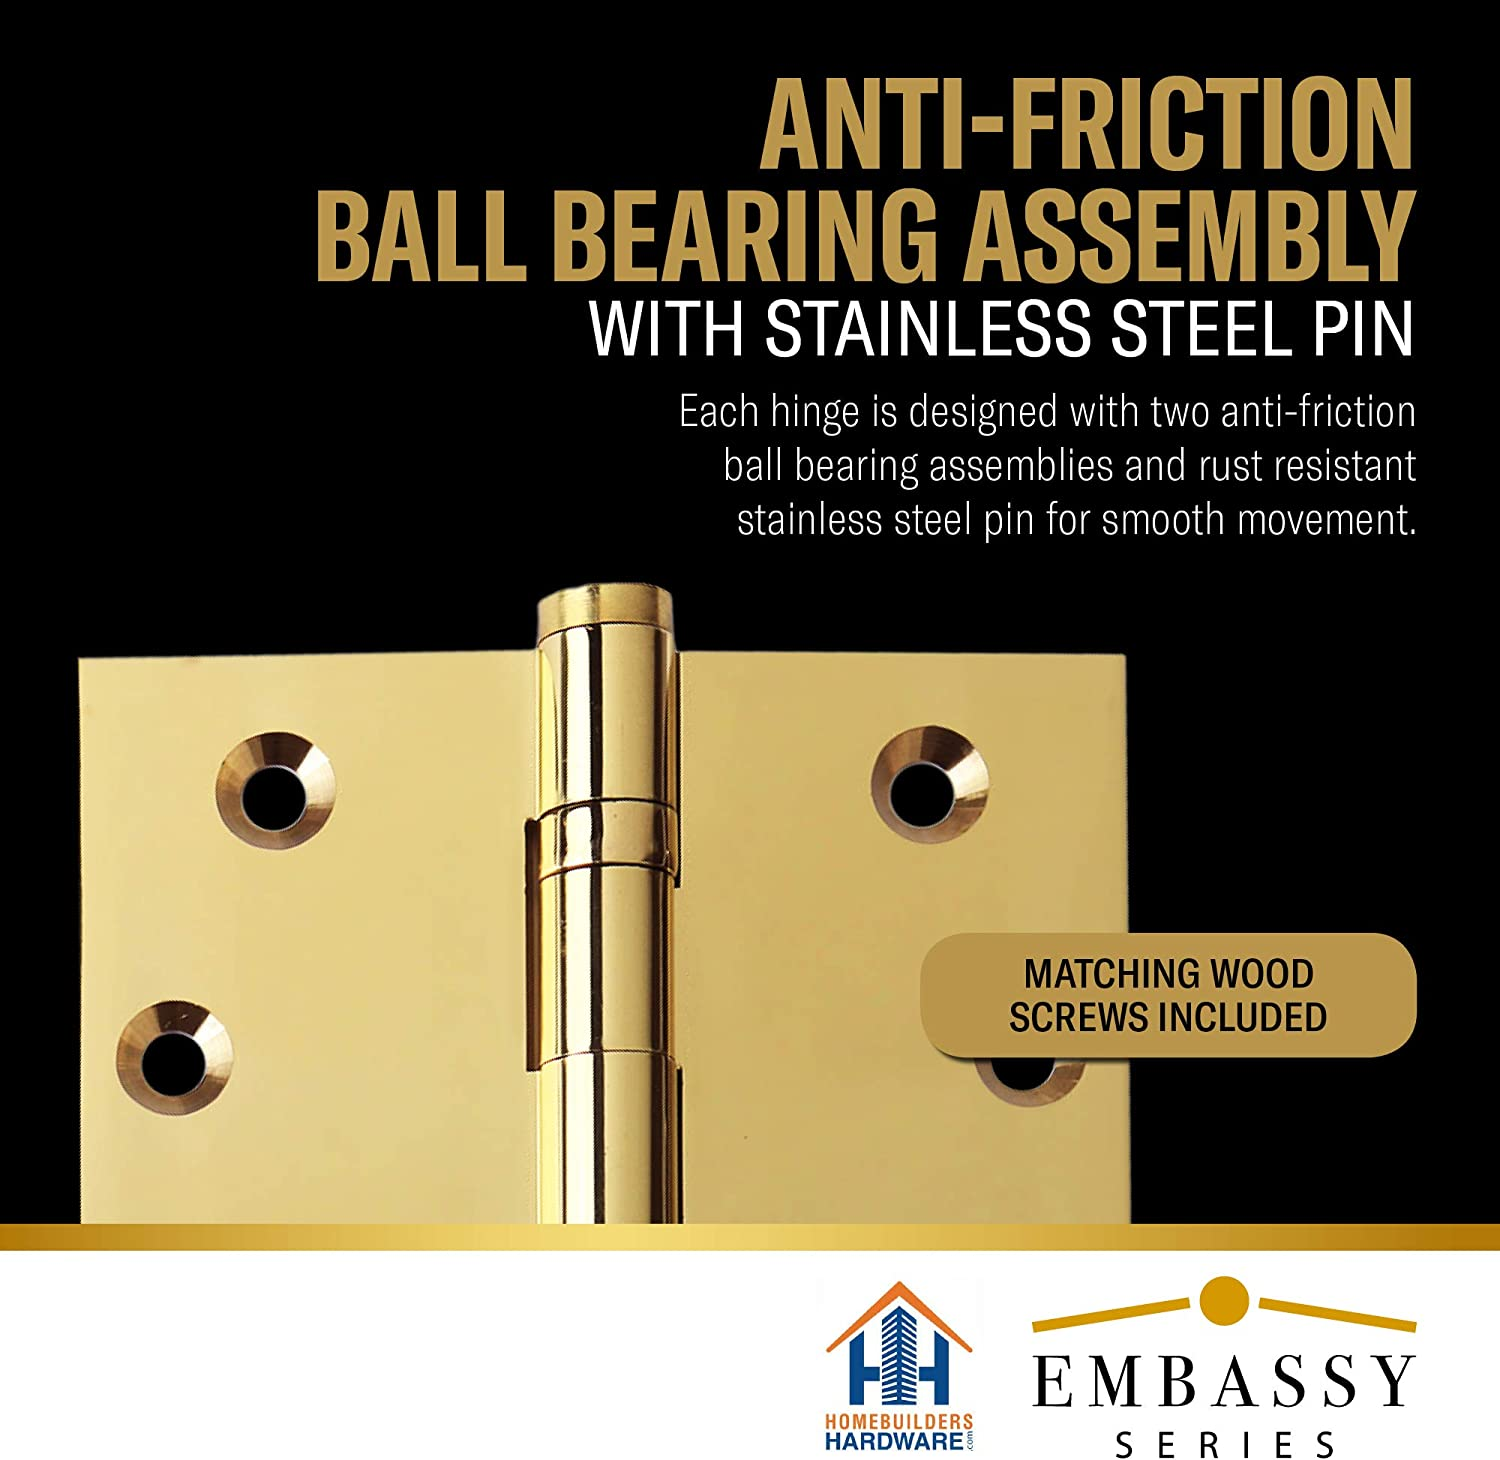 Stainless Steel Removable Pin Architectural Grade Ball//Urn//Button Tips Included US3 3 Door Hinges 3.5 x 3.5 Extruded Solid Brass Ball Bearing Brass Hinge Heavy Duty Polished Brass